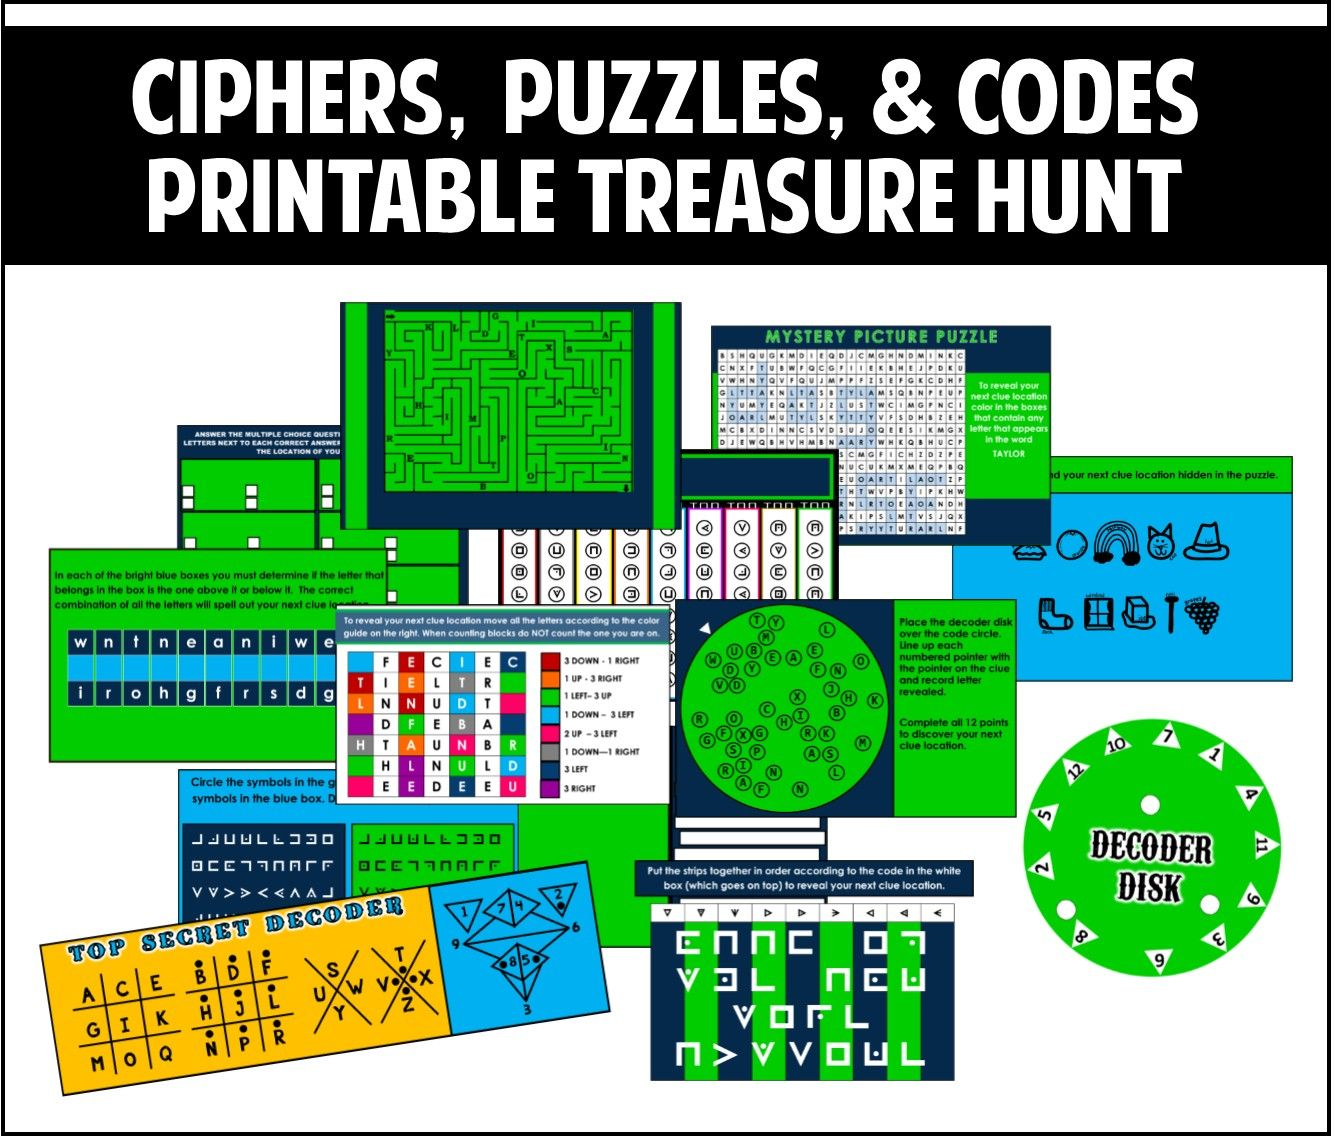 image about Free Printable Escape Room Puzzles known as Ciphers, Puzzles, and Codes Treasure Hunt - Suitable component is